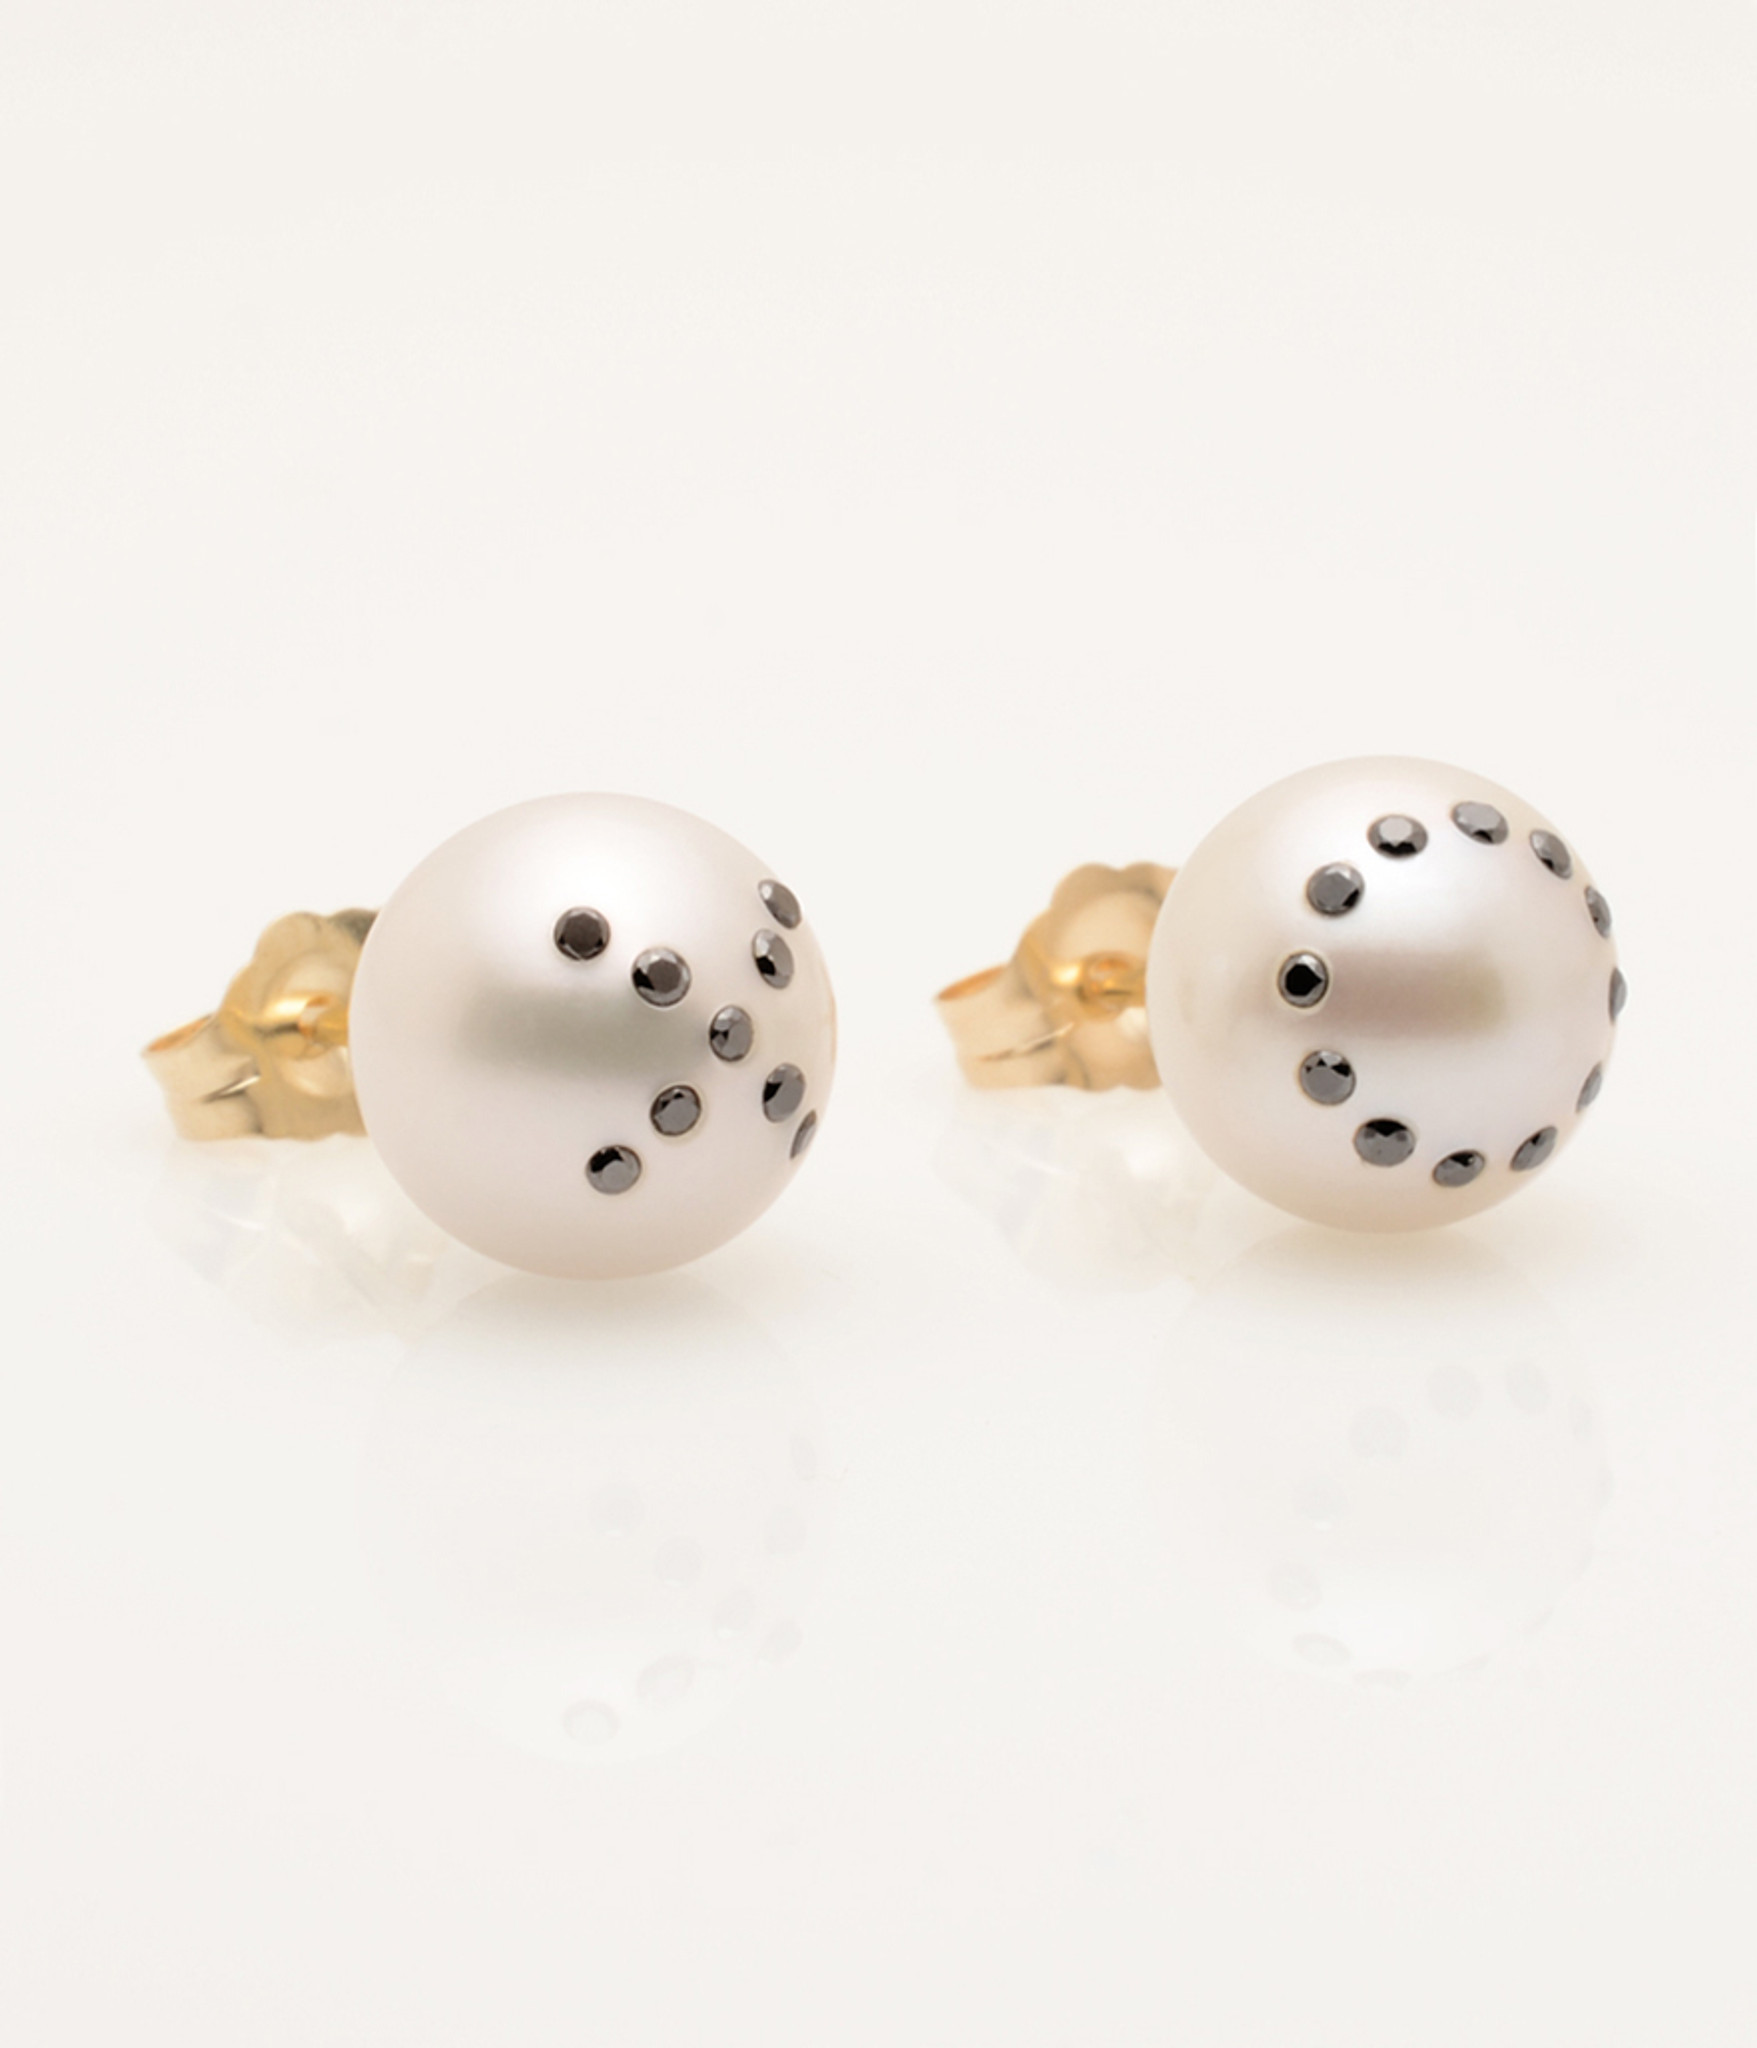 Cultured Freshwater Pearl Earrings with X Emoji Diamond Pave and 14k Gold Posts by Jewelry Designer Nektar De Stagni (8-9-mm). May be matched with O single earring.